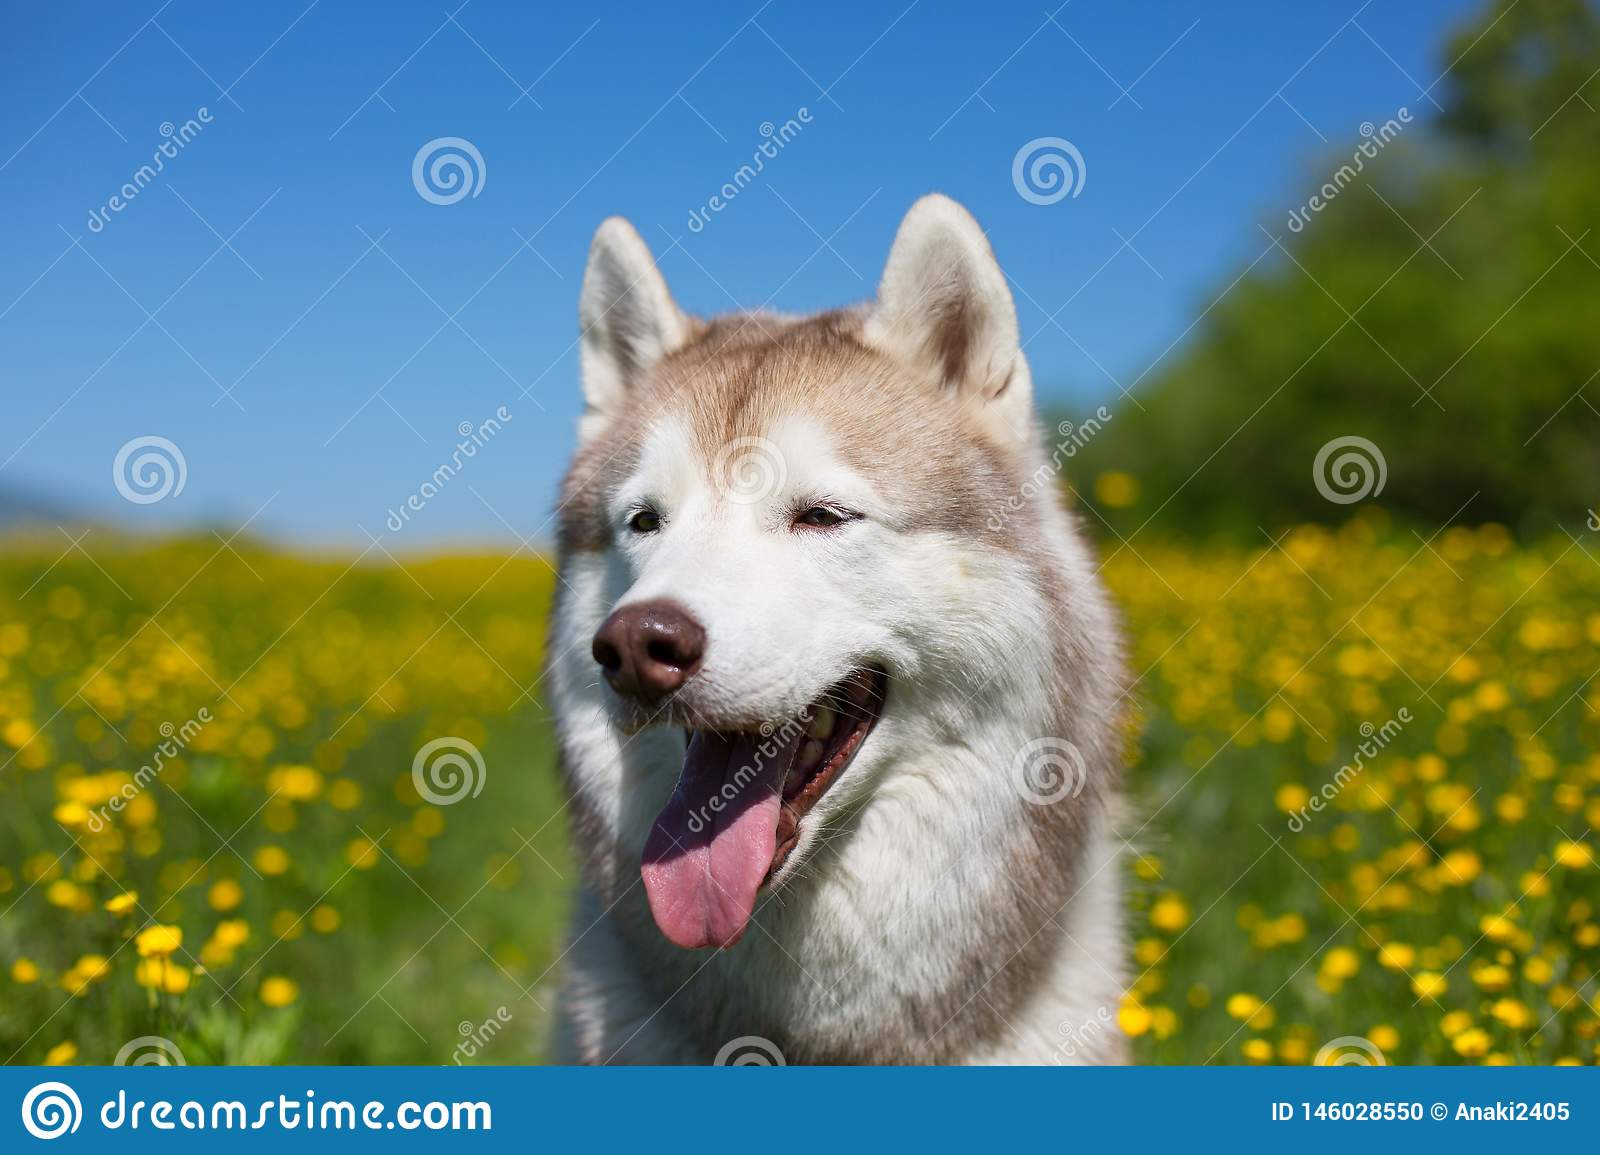 dog breed siberian husky is in the buttercup field in summer on the yellow flowers, green grass and blue sky background